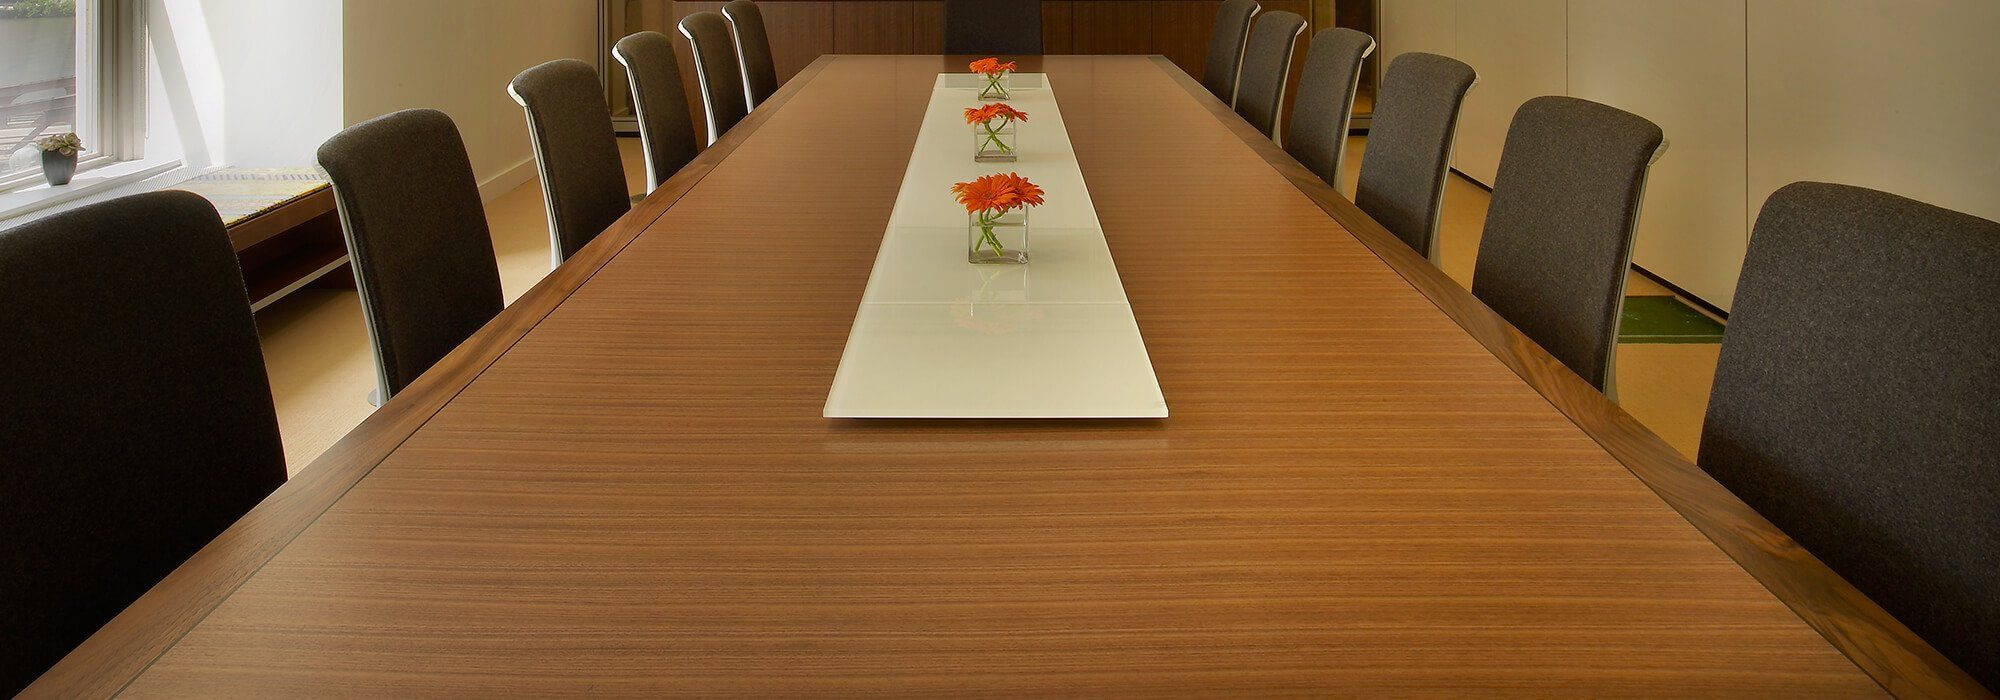 ExecutiveWoodConferenceTable2 executive board room Pinterest